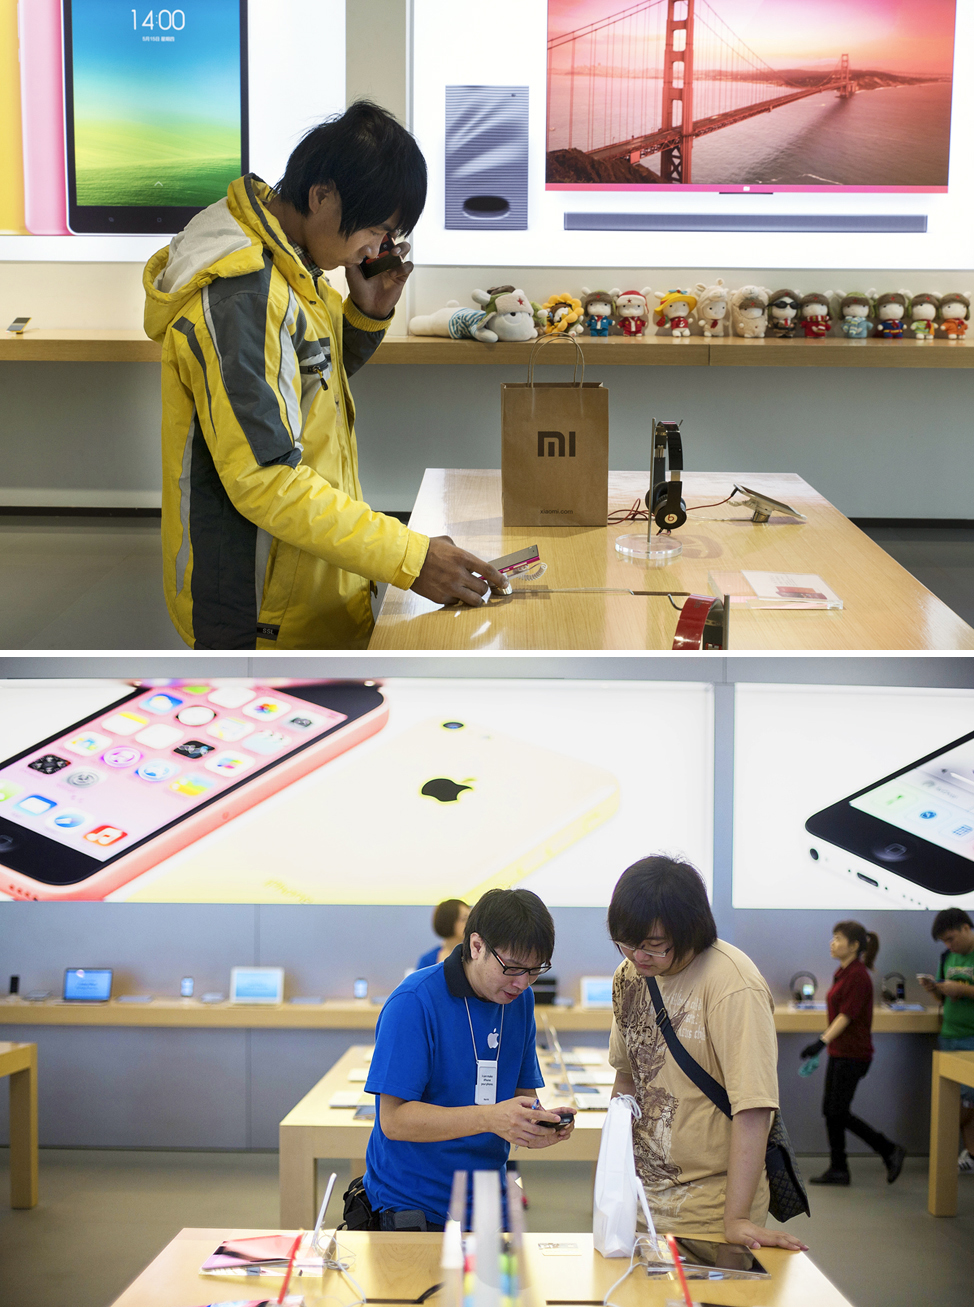 Xiaomi store, Apple Store, Chinese Cell Phone